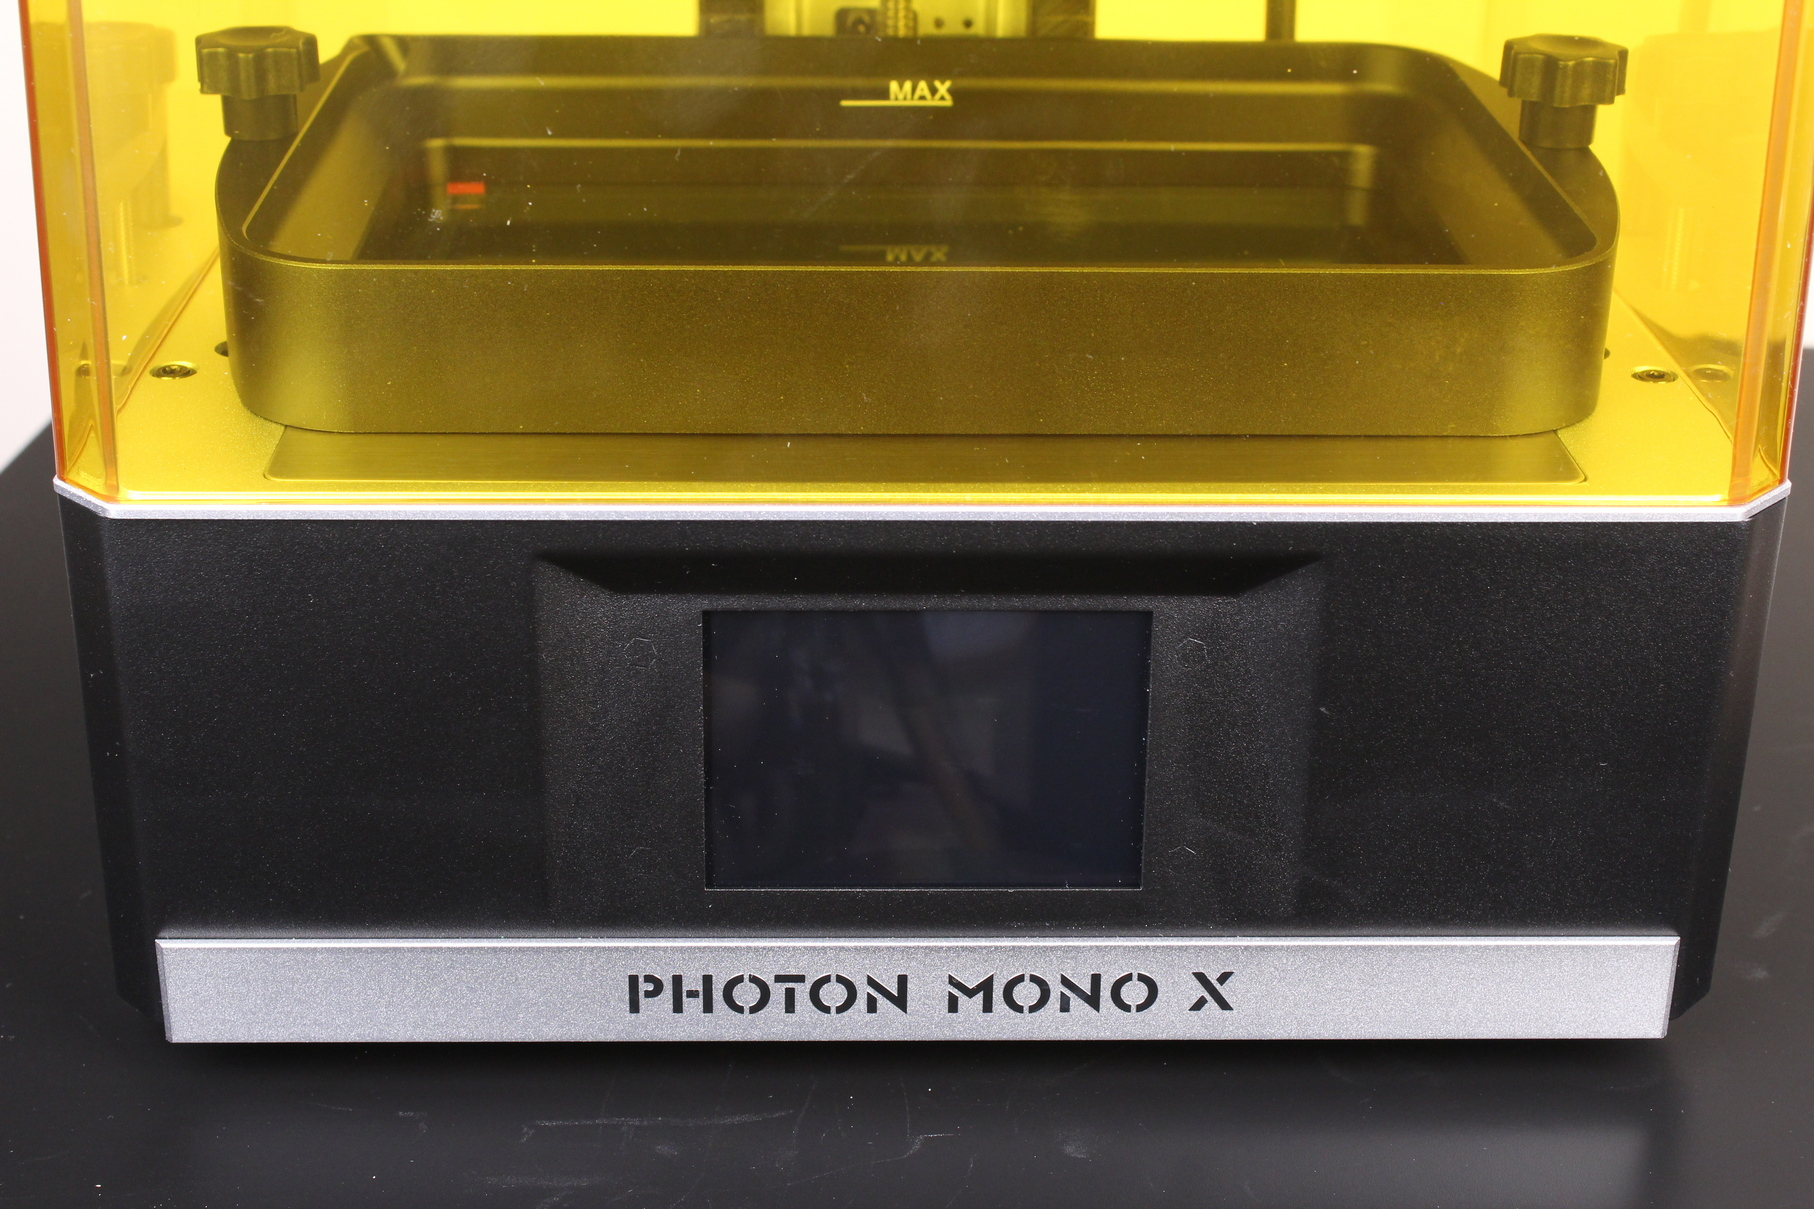 Anycubic-Photon-Mono-X-front-side